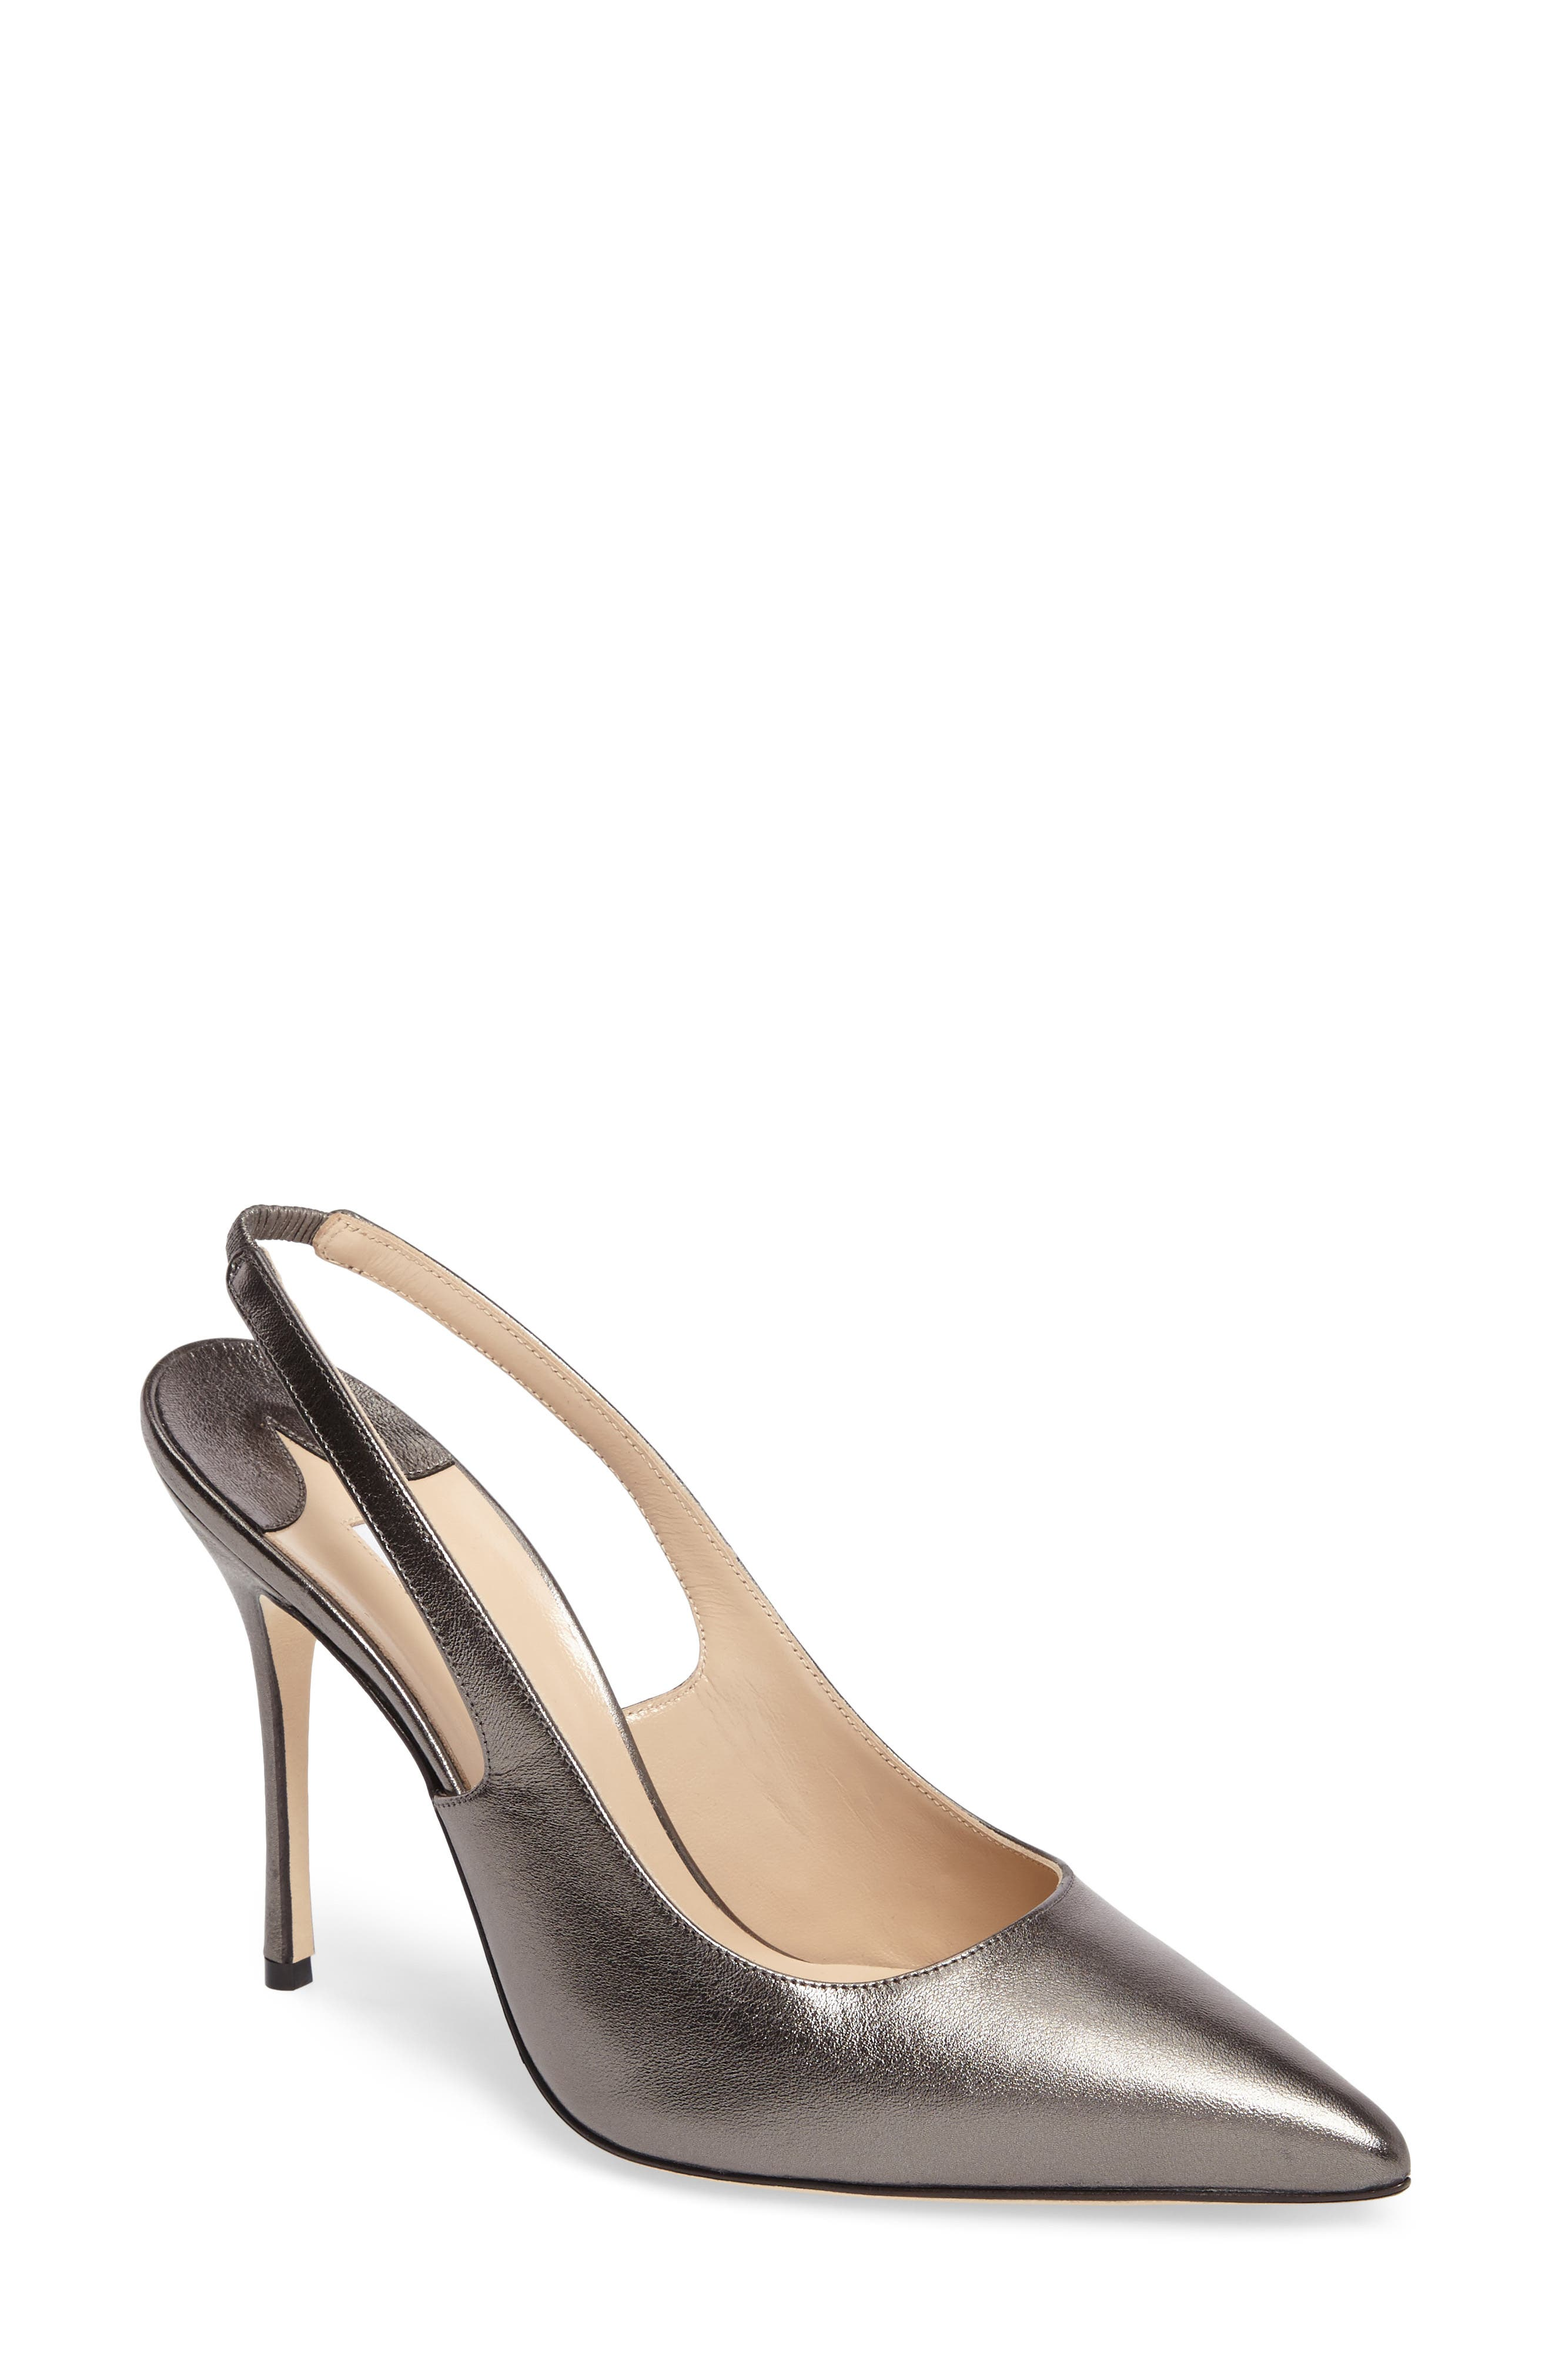 Allura Slingback Pump,                             Main thumbnail 1, color,                             ANTHRACITE LEATHER